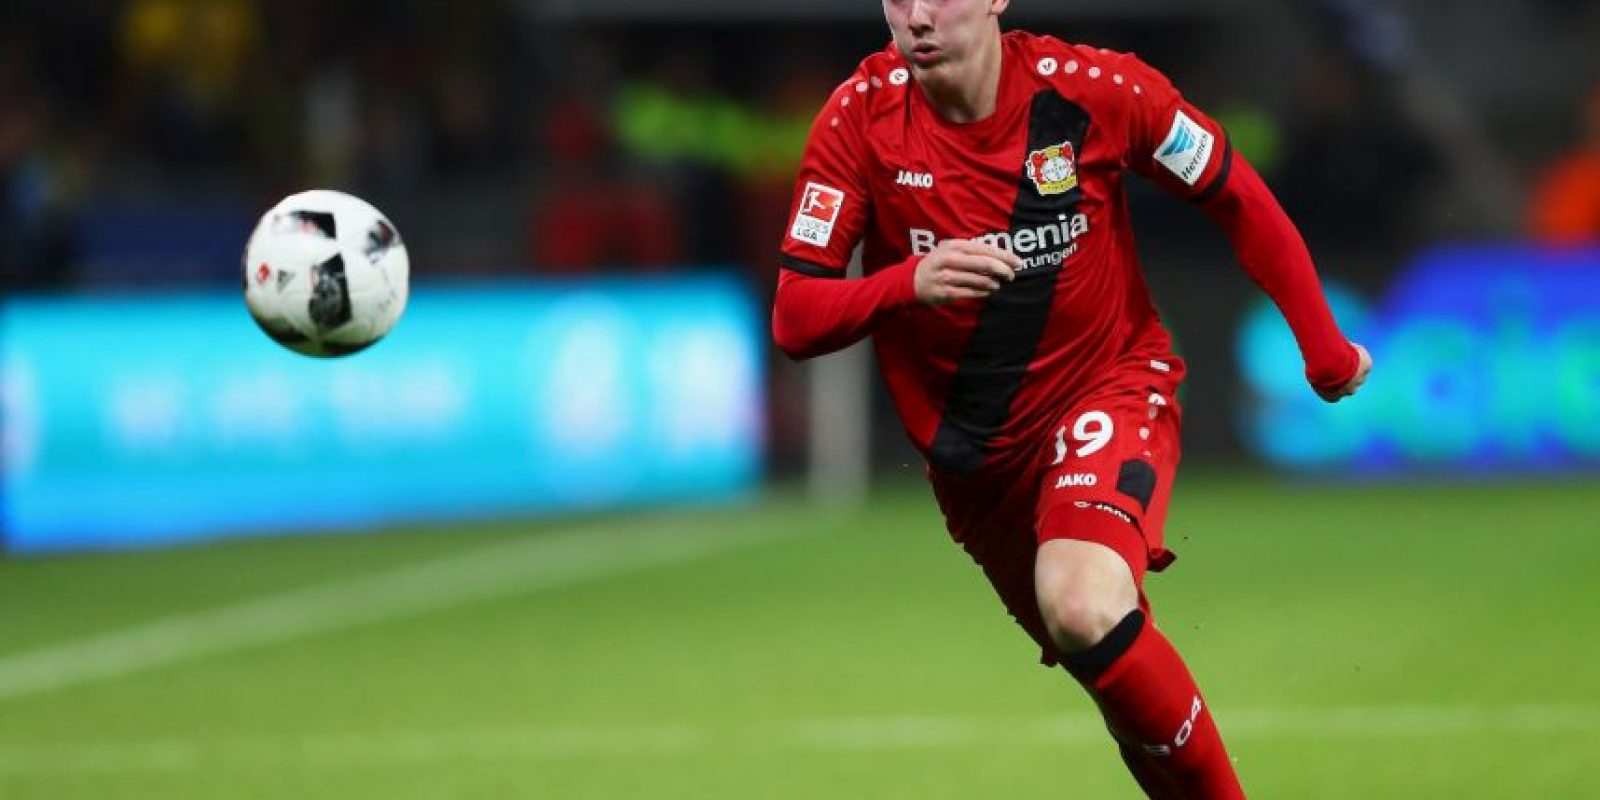 13.-Julian Brandt – 20 años (Bayer Leverkusen) Foto: Getty Images